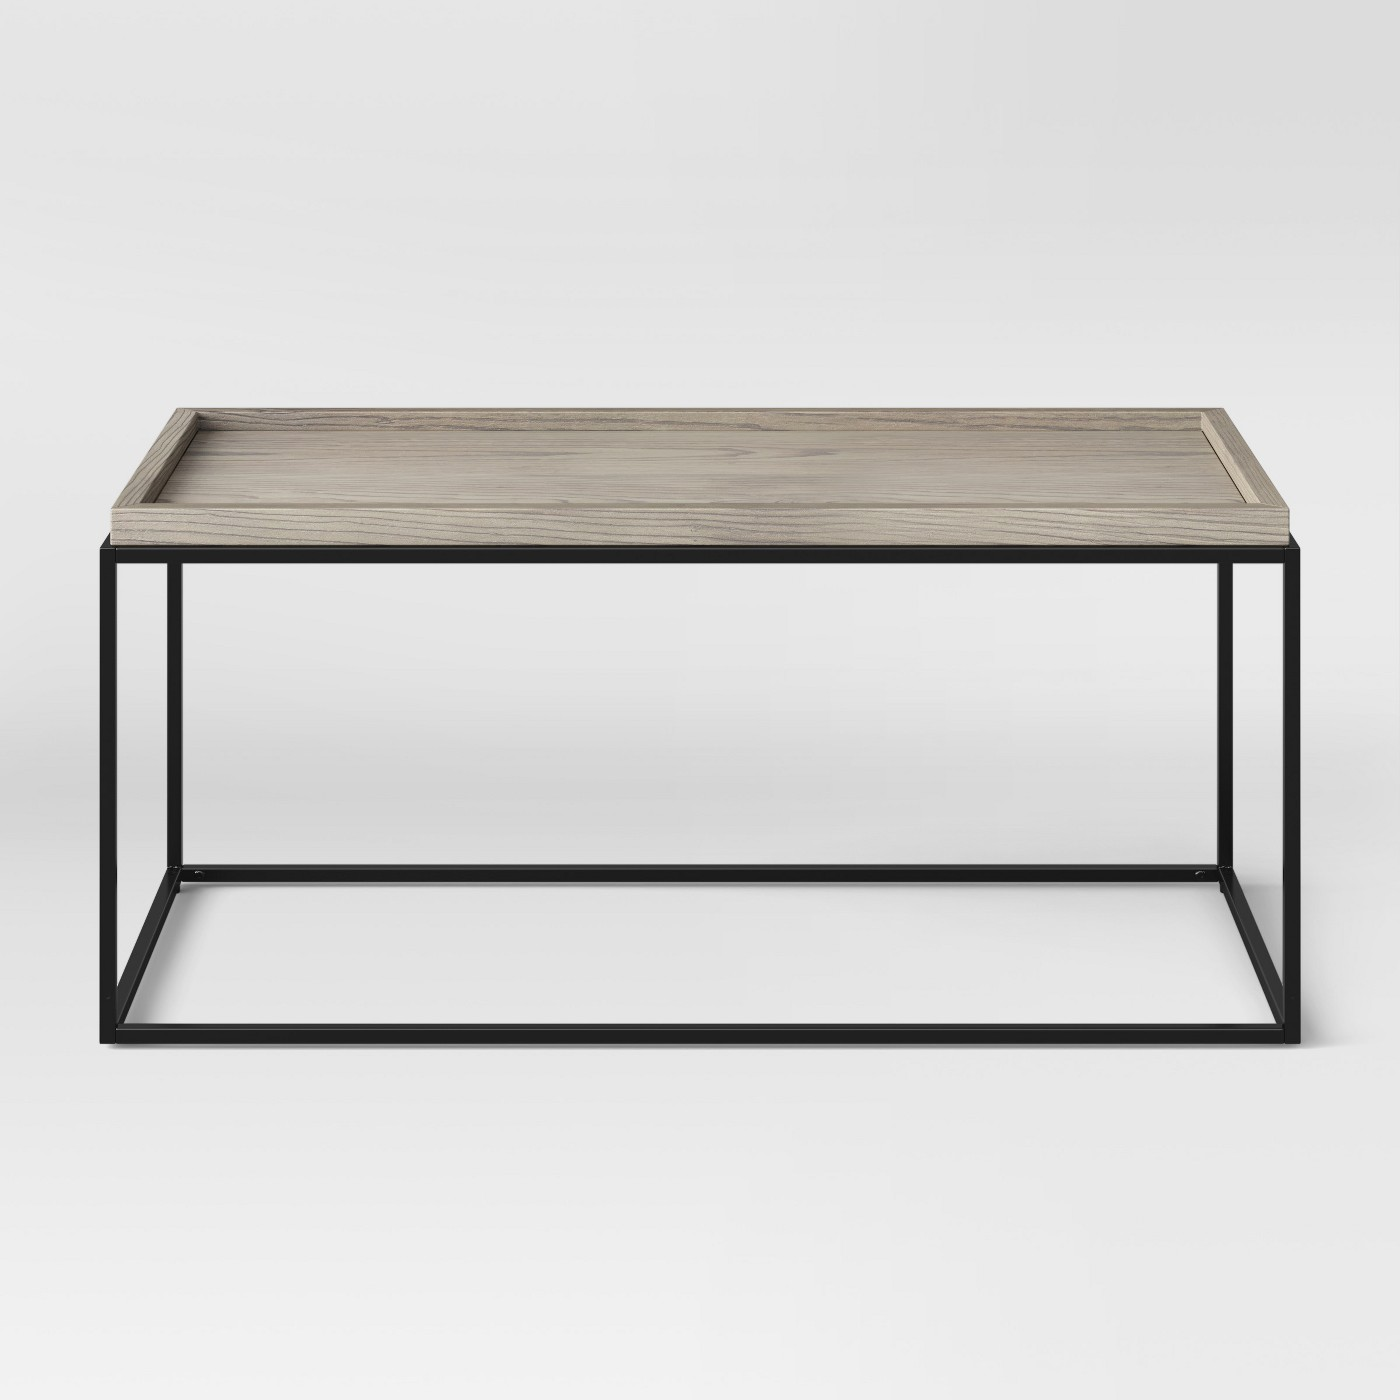 Threshold Bennington Mixed Material Coffee Table from Target